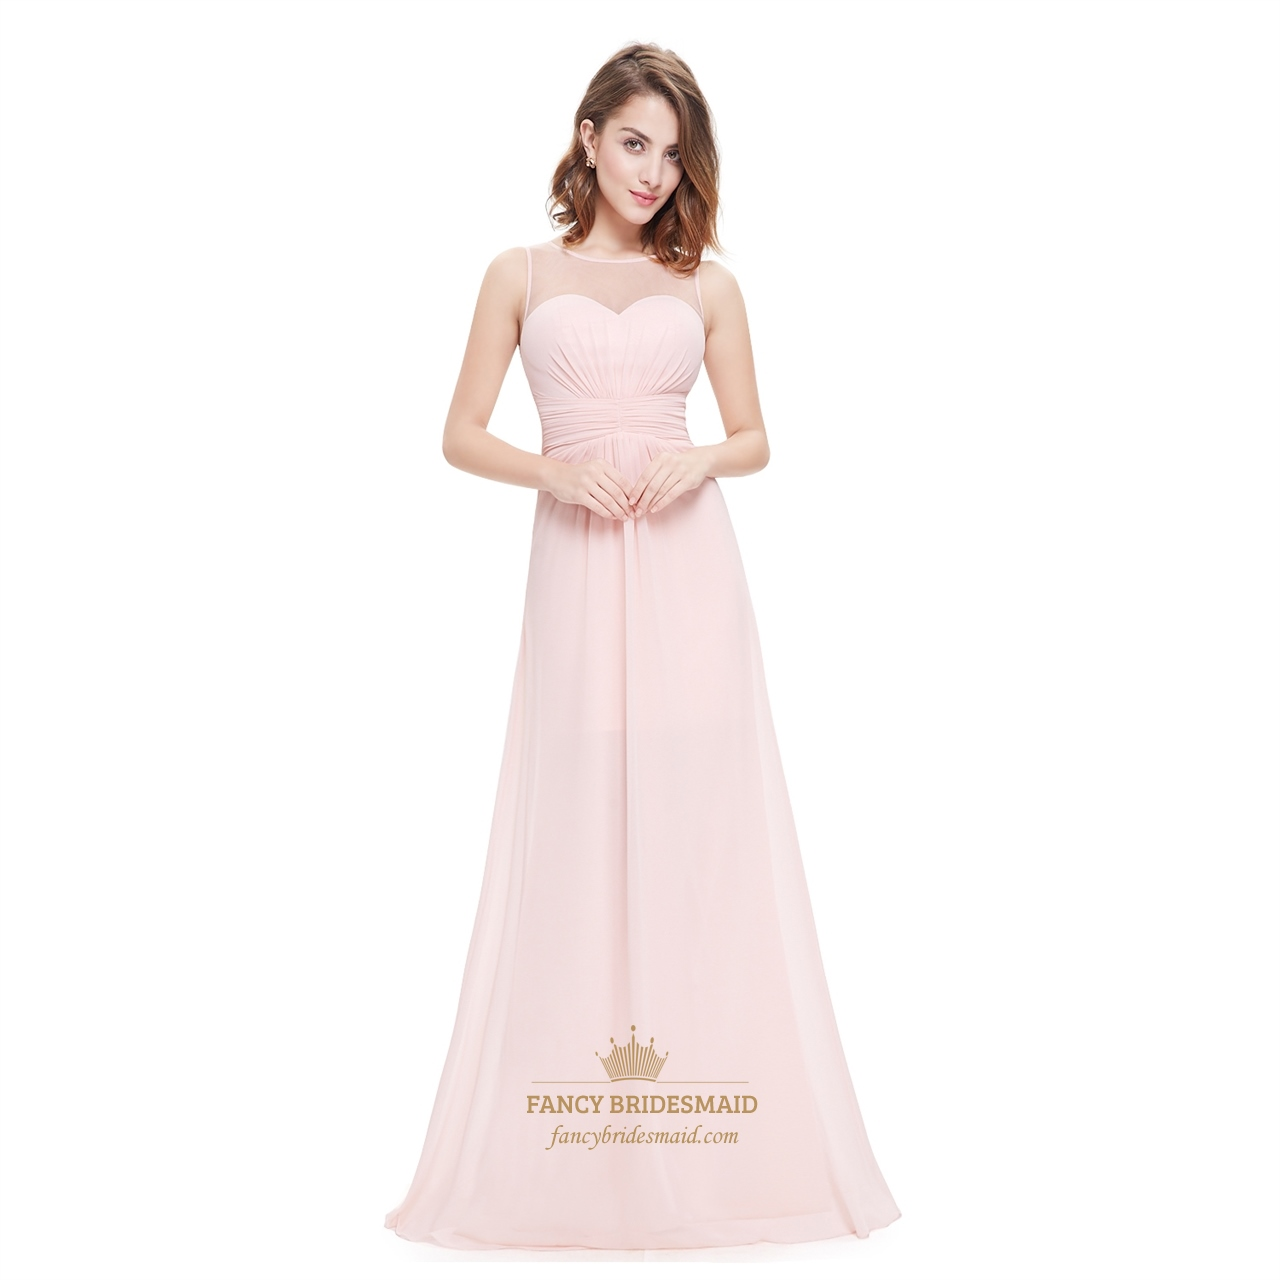 Sheer Long Pink Flowy Chiffon Bridesmaid Dress With Gathered Bodice